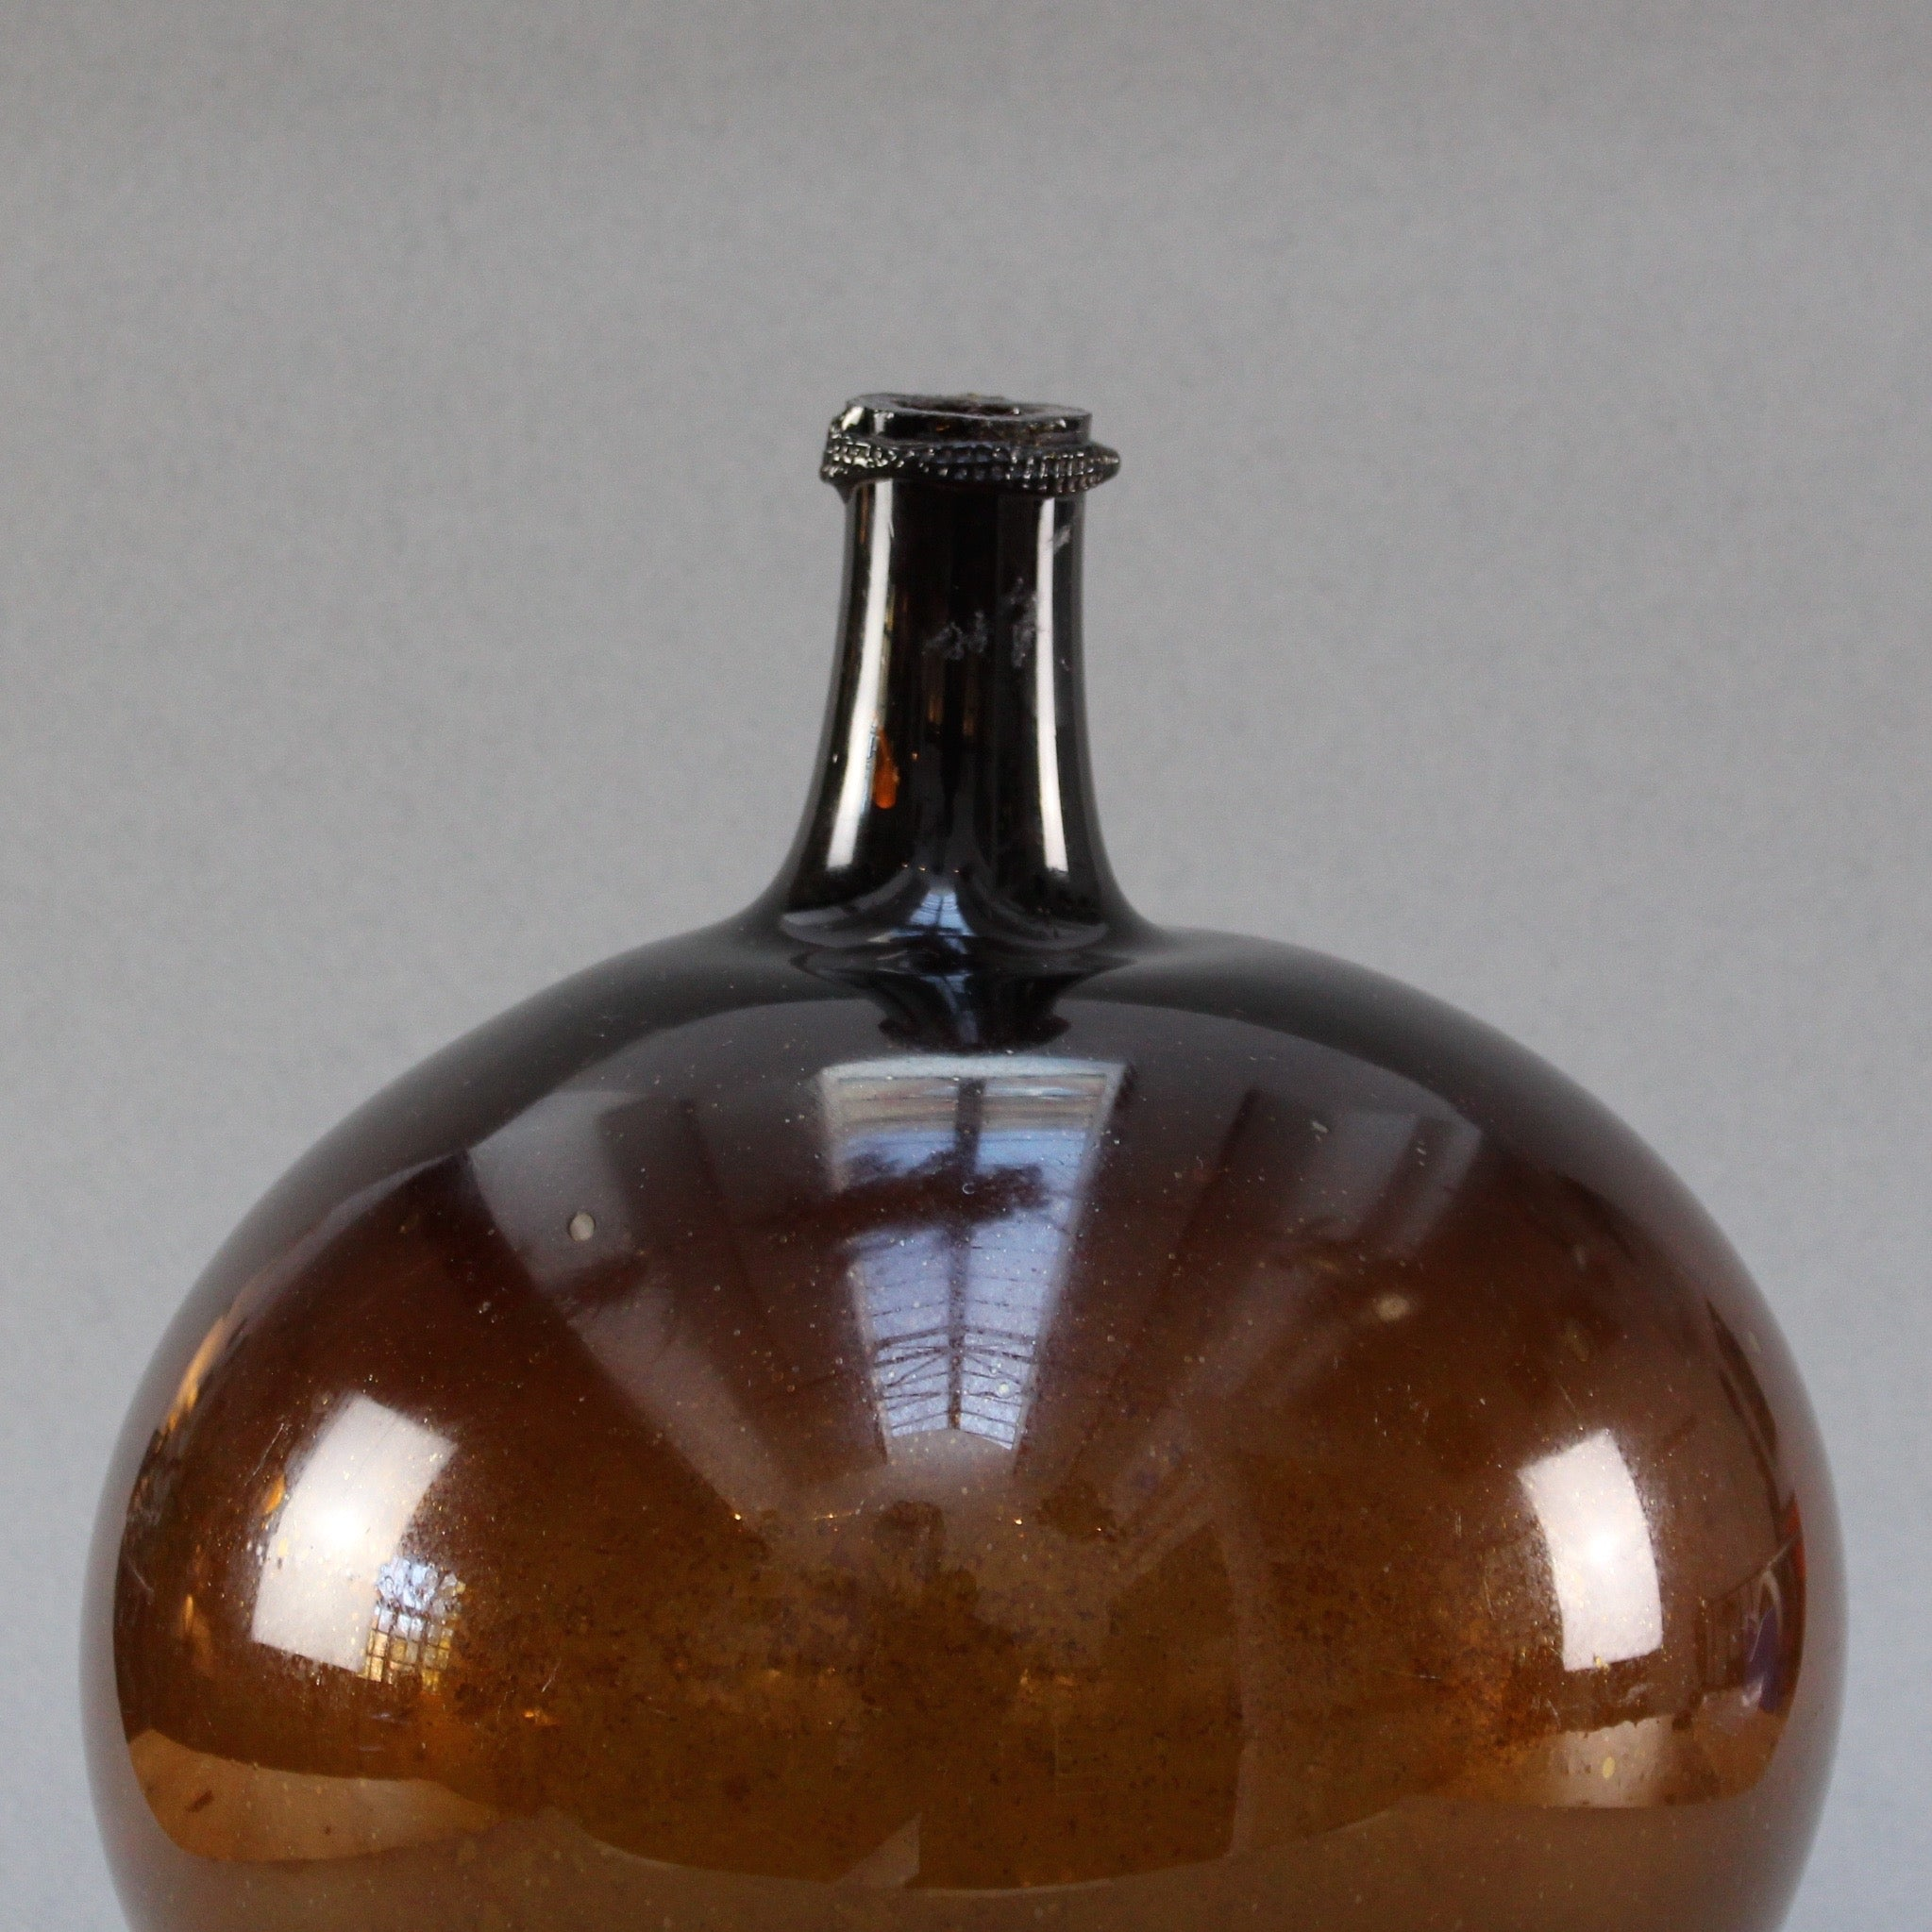 Handblown Amber Glass Demijohn (c. 1820-1850)